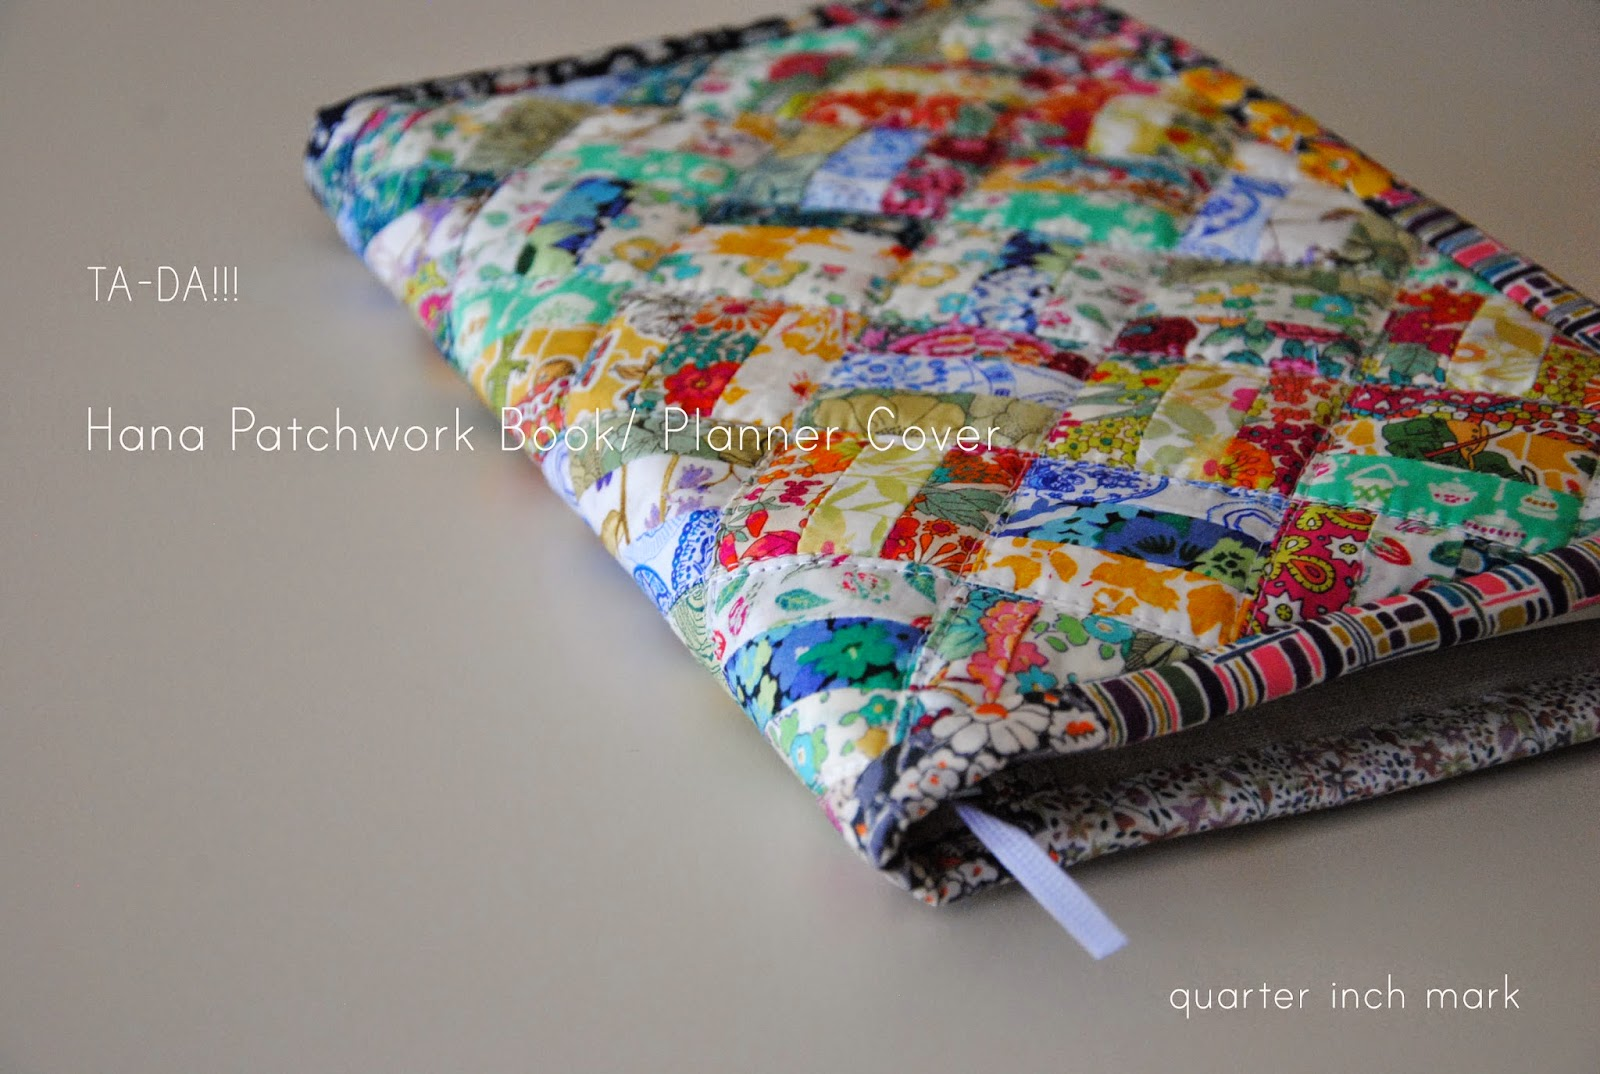 Patchwork Book Cover Pattern : Quot mark tutorial hana patchwork book planner cover